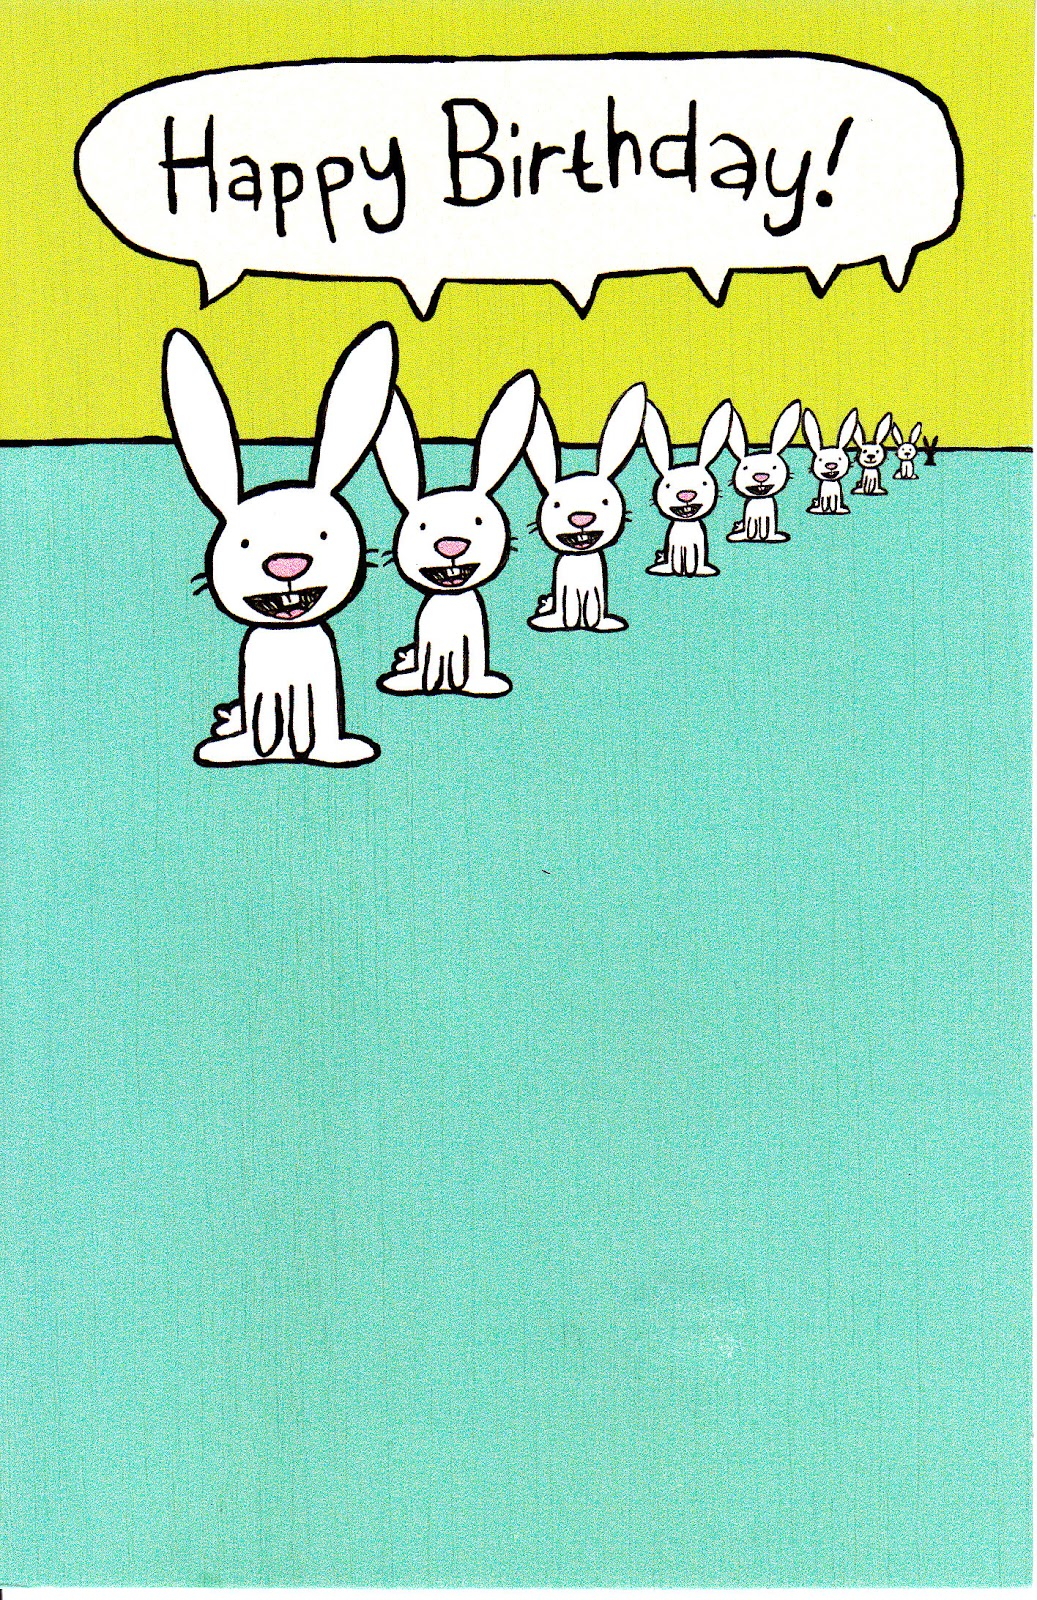 Rabbit ramblings more funny bunny birthday cards inside is a crack about a receding hare line another funny one from american greetings their share a laugh line m4hsunfo